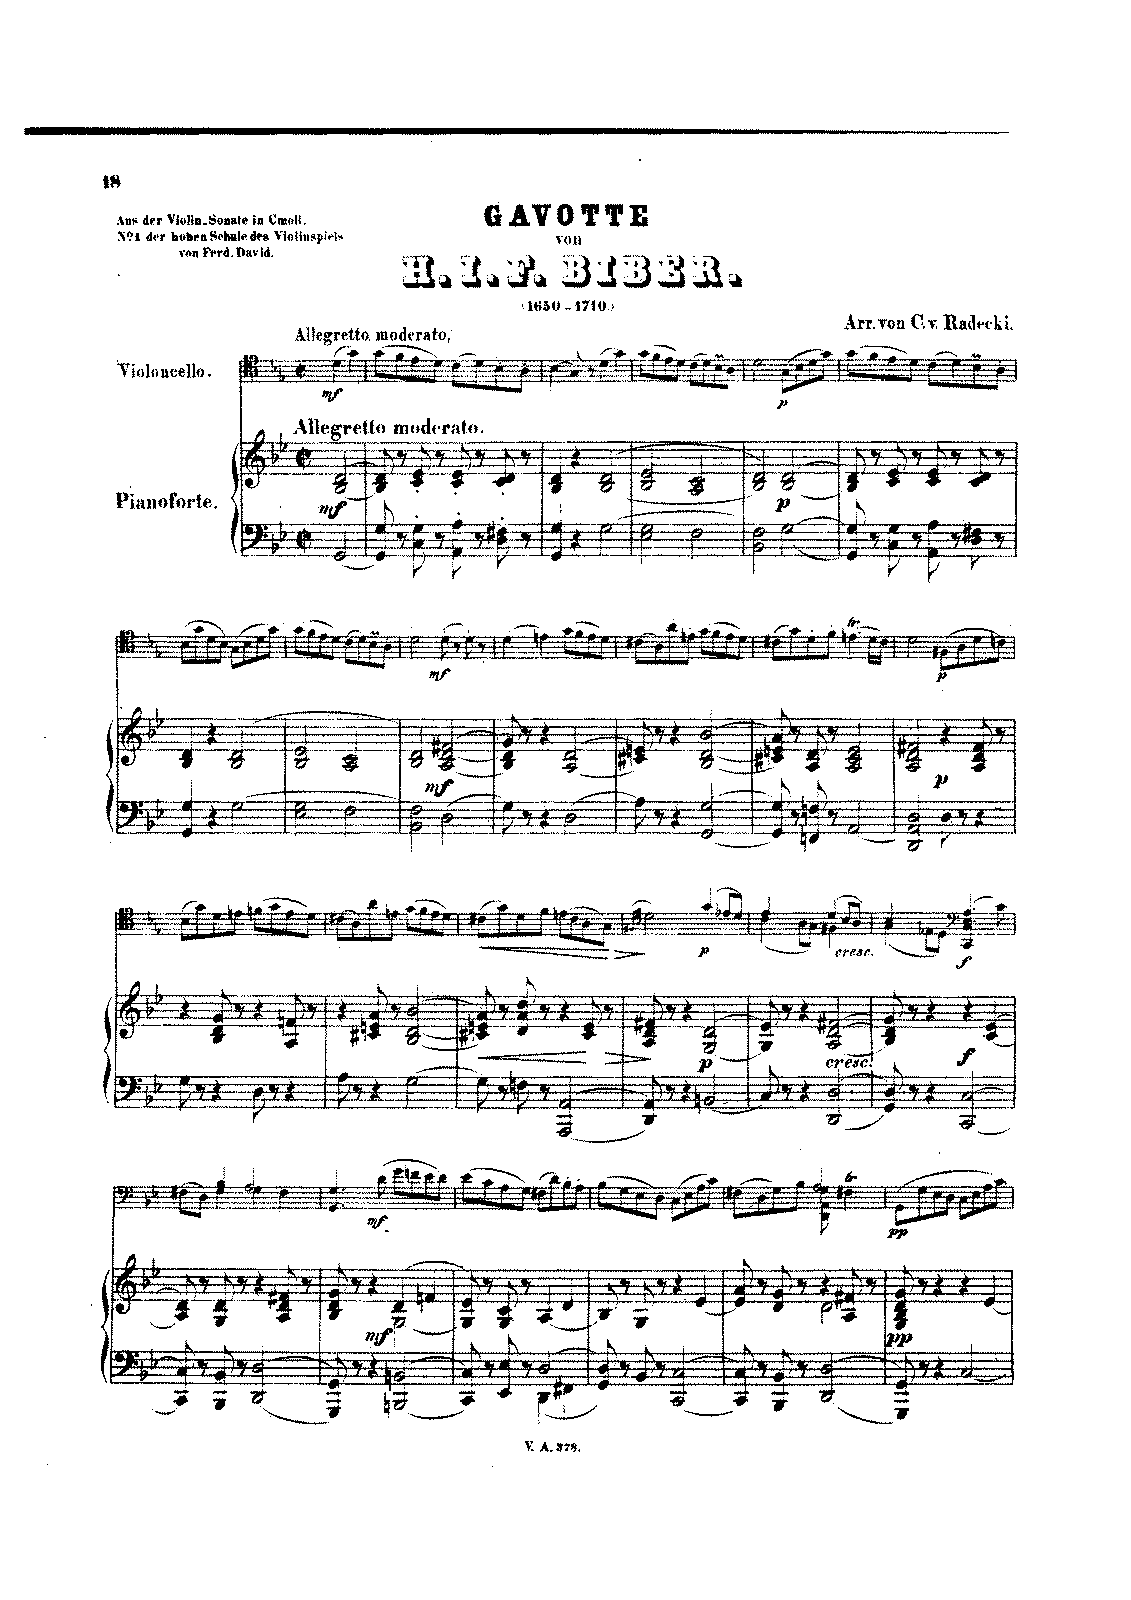 PMLP101360-Biber - Gavotte from Vln Sonata in C (arr Radecki) for Cello and Piano score.pdf